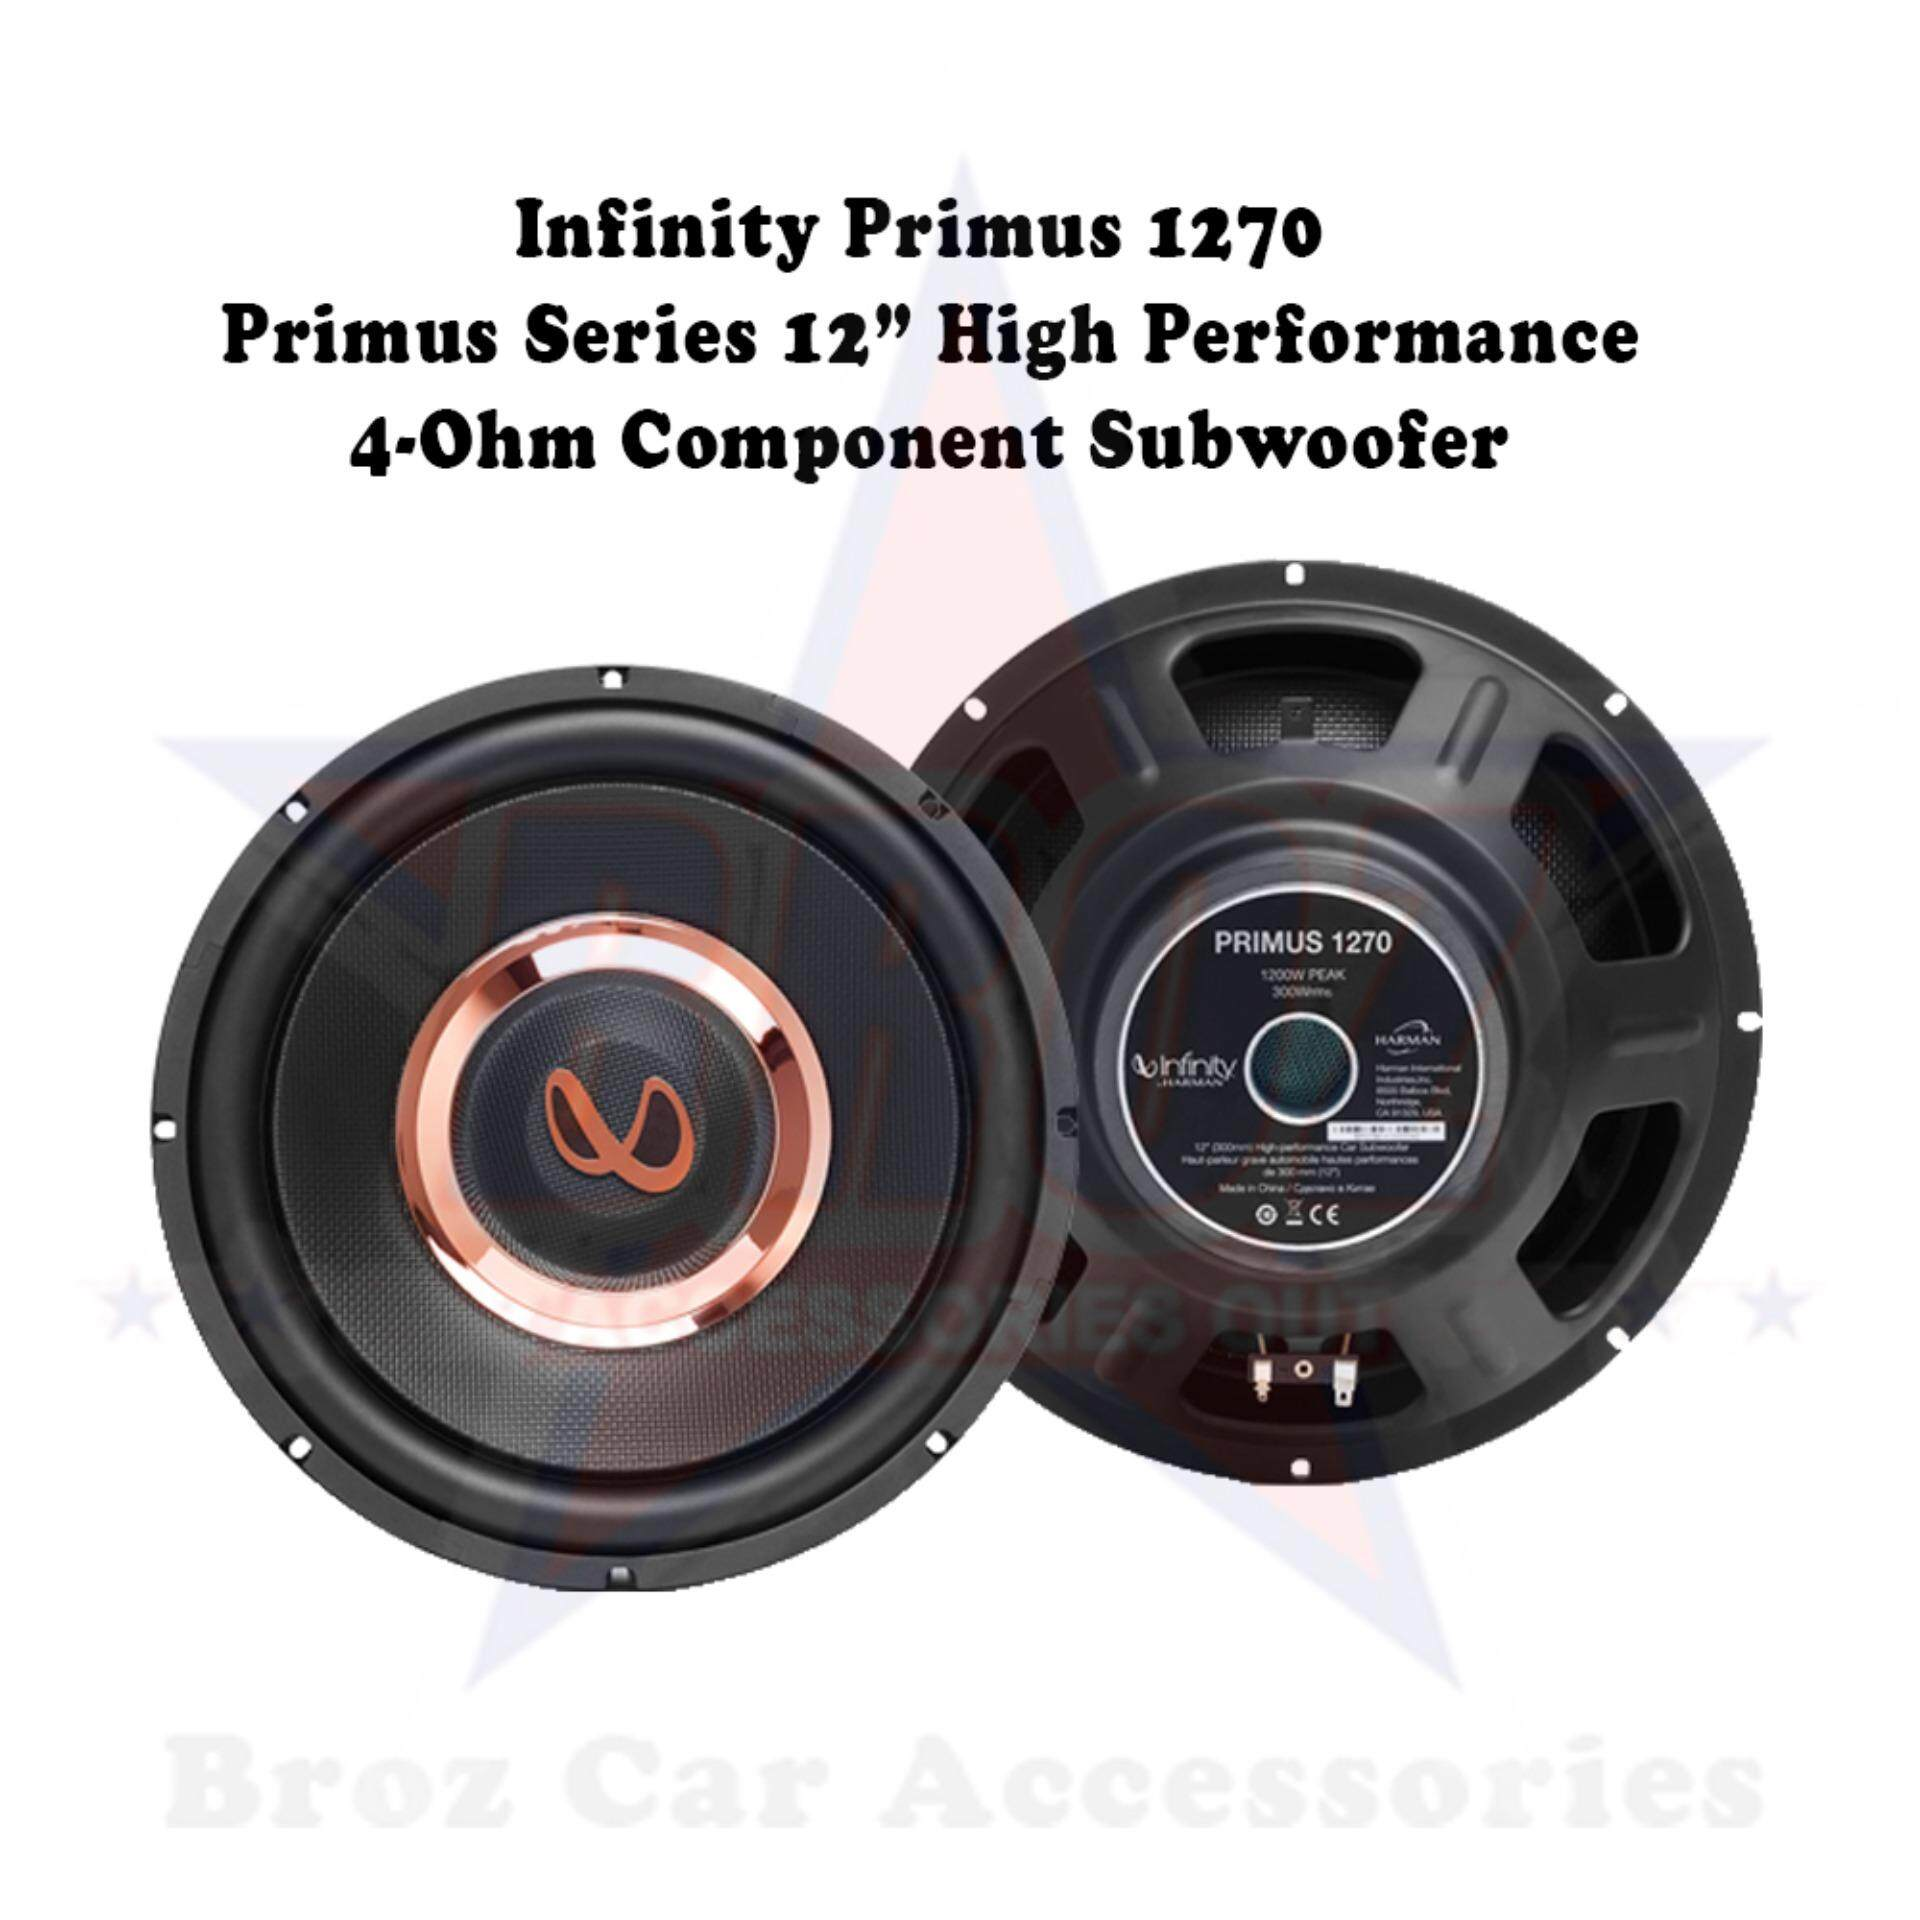 Infinity Primus 1270 Primus Series 12 High Performance 4-Ohm Component Subwoofer